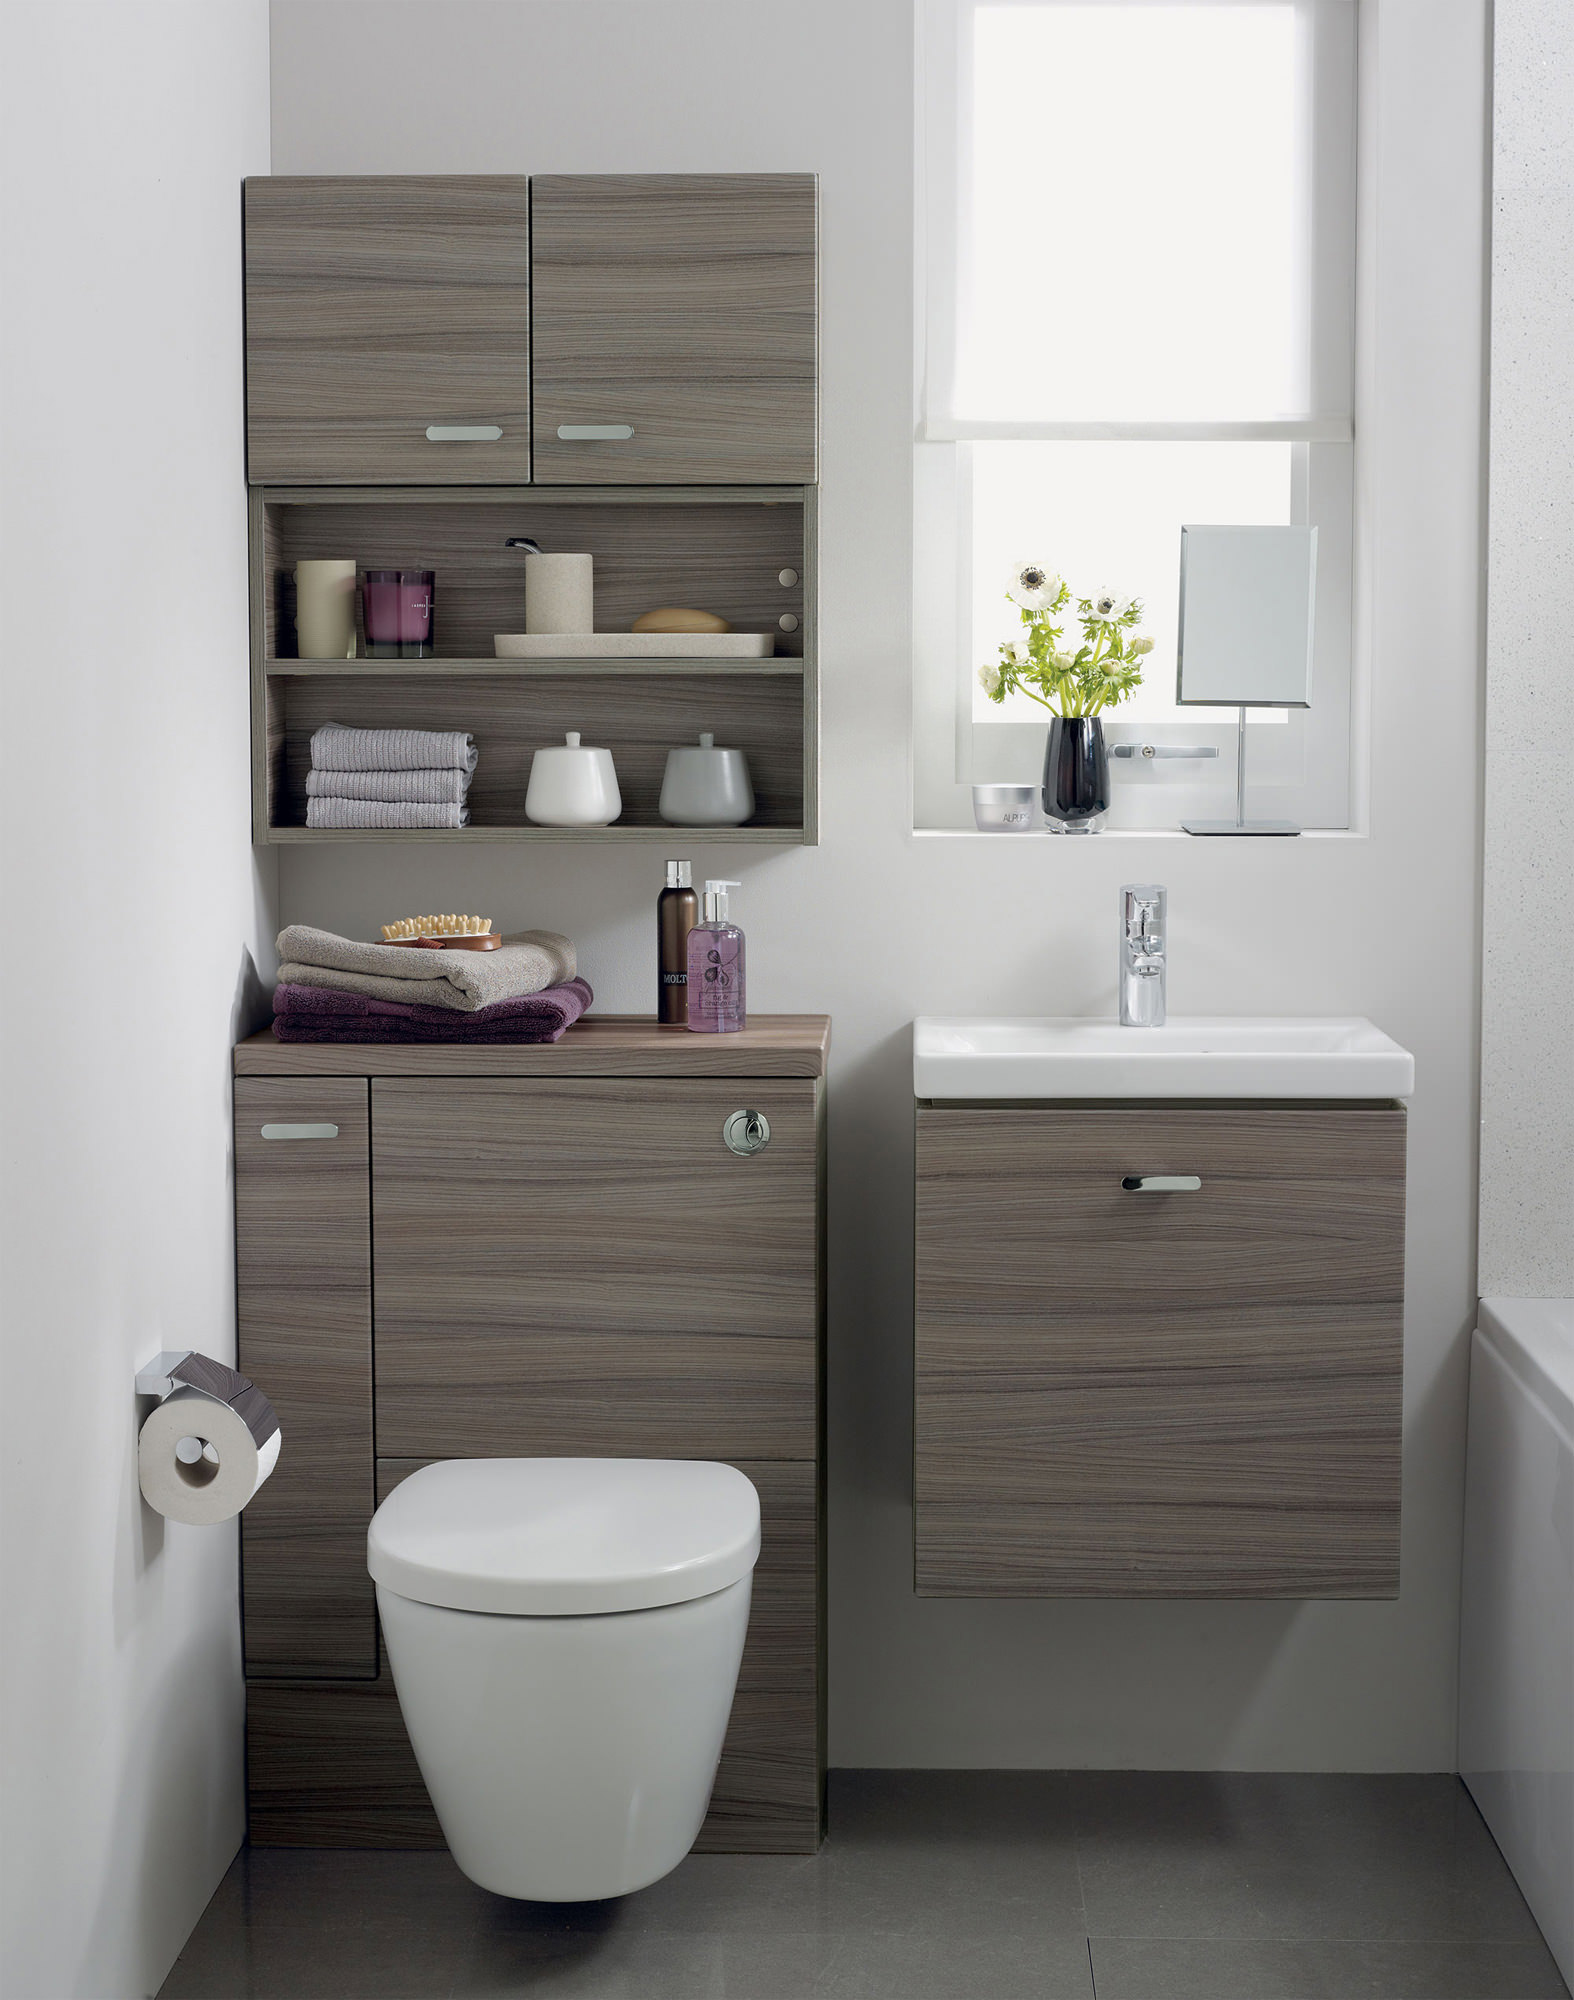 ideal standard concept space wc unit with lh storage. Black Bedroom Furniture Sets. Home Design Ideas